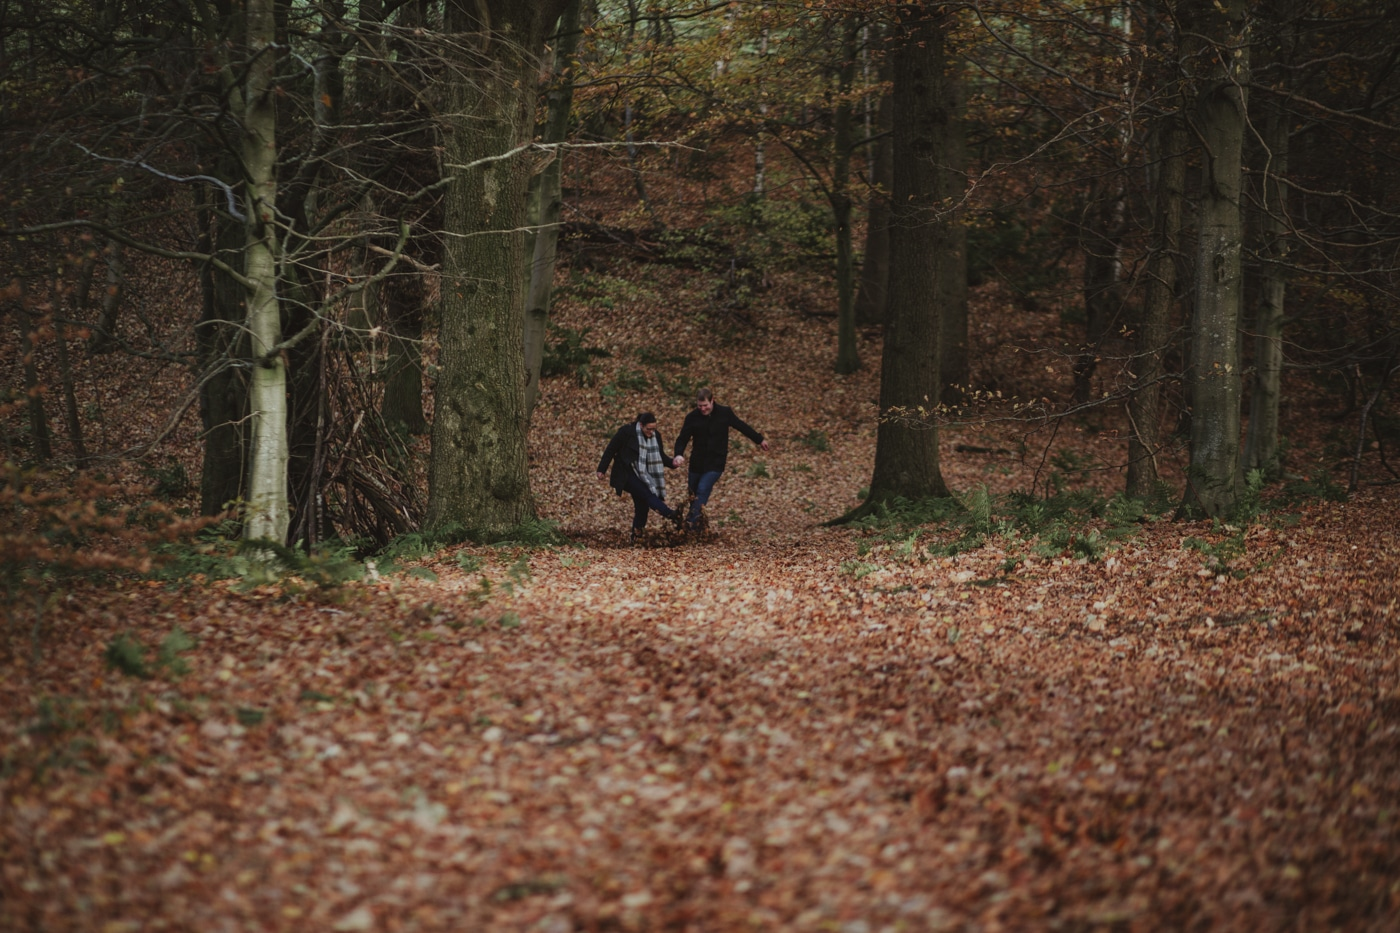 Man and woman kicking leaves at each other in the woodland by Joshua Wyborn Photographic